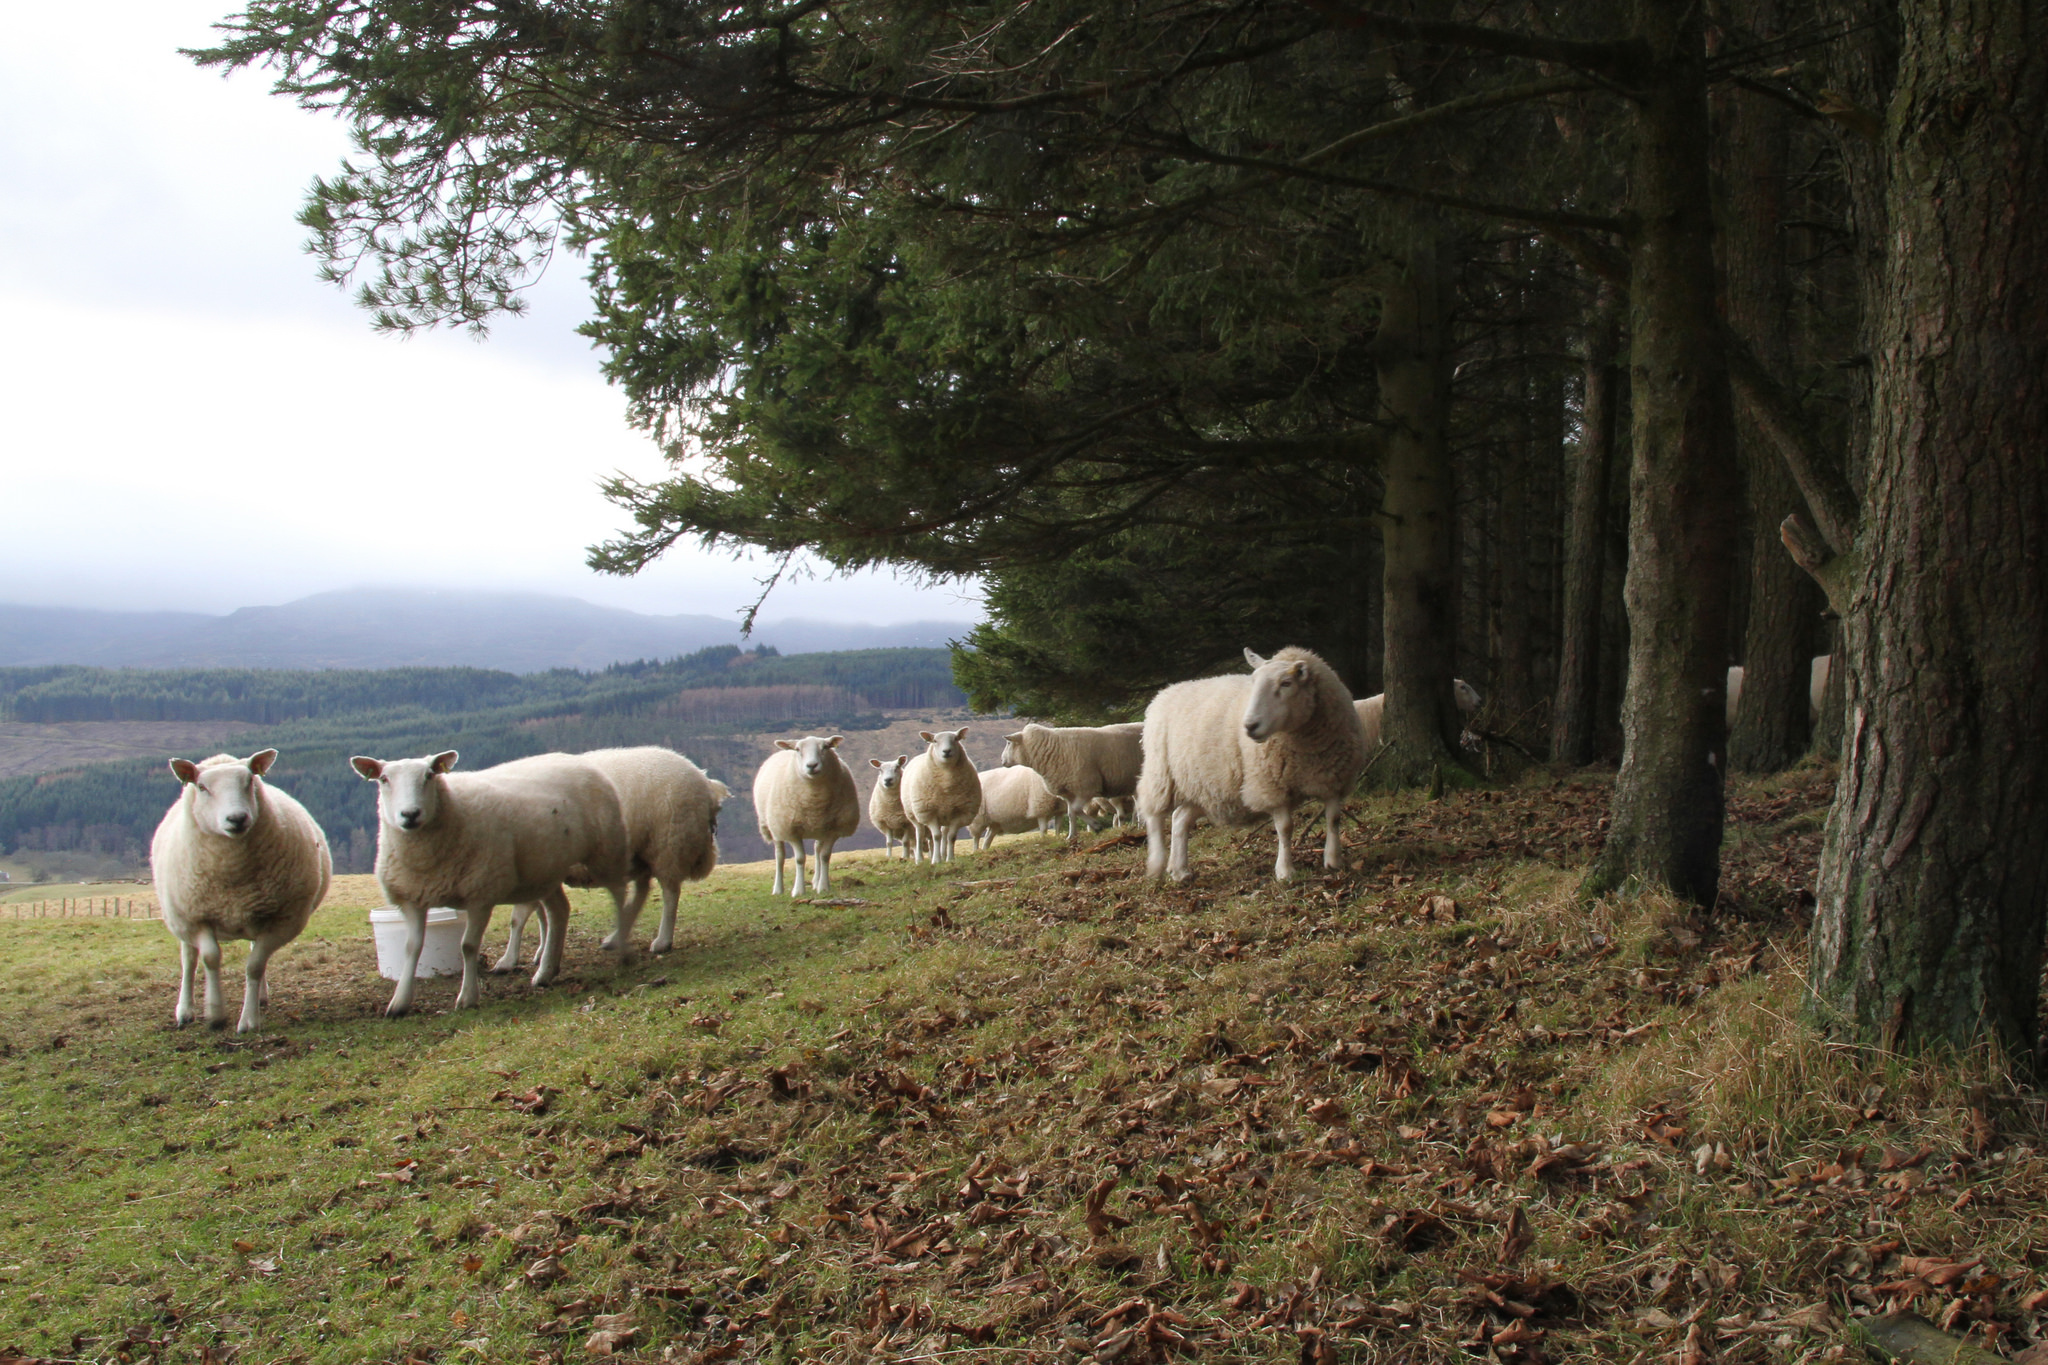 Sheep benefitting from tree shelter  - but grazing under trees may diminish their ability to absorb excess rainfall